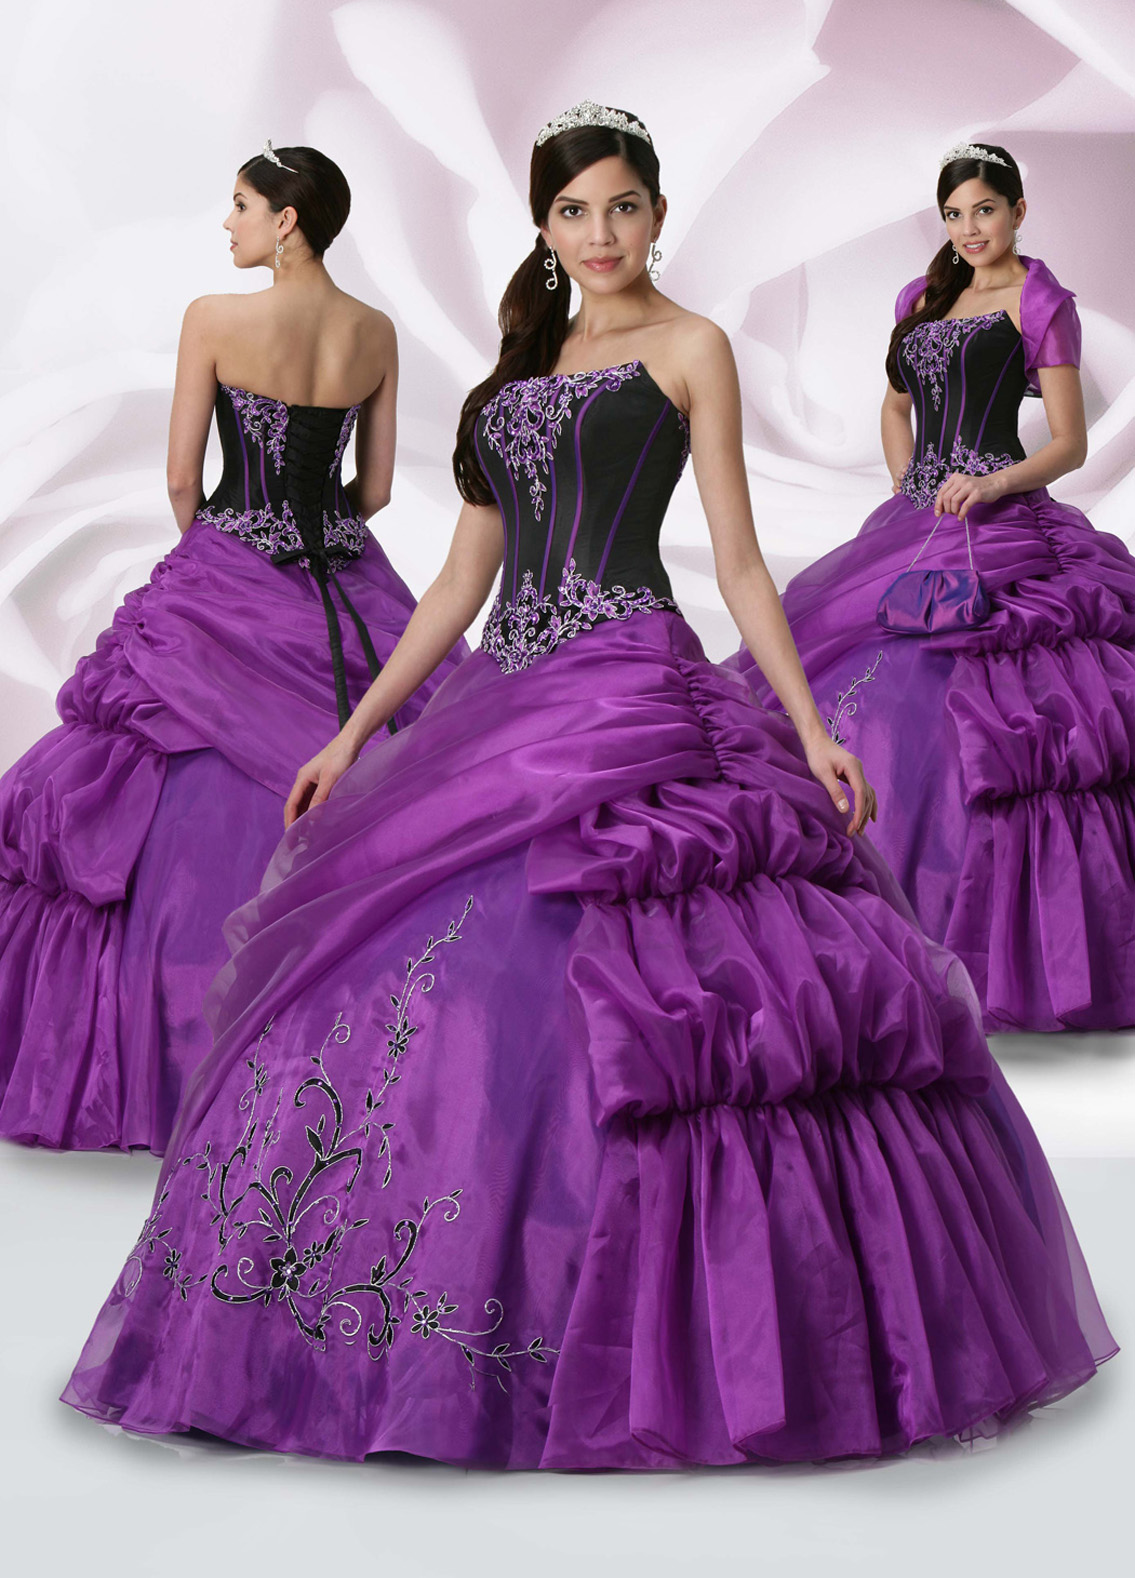 Tips For Buying A Ball Gown